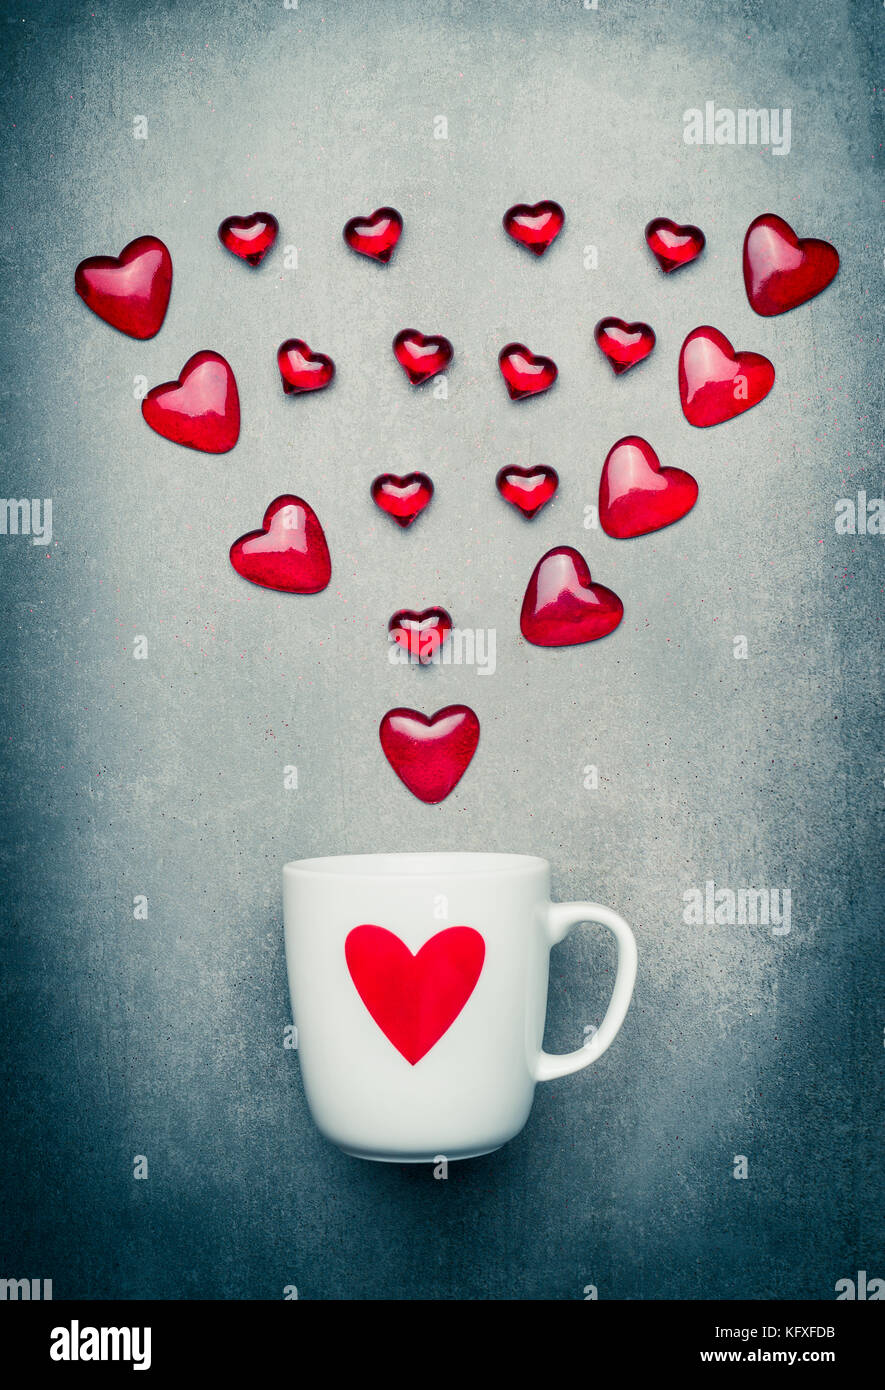 Mug and red hearts arrow romantic love symbols valentines day mug and red hearts arrow romantic love symbols valentines day or birthday concept place for text biocorpaavc